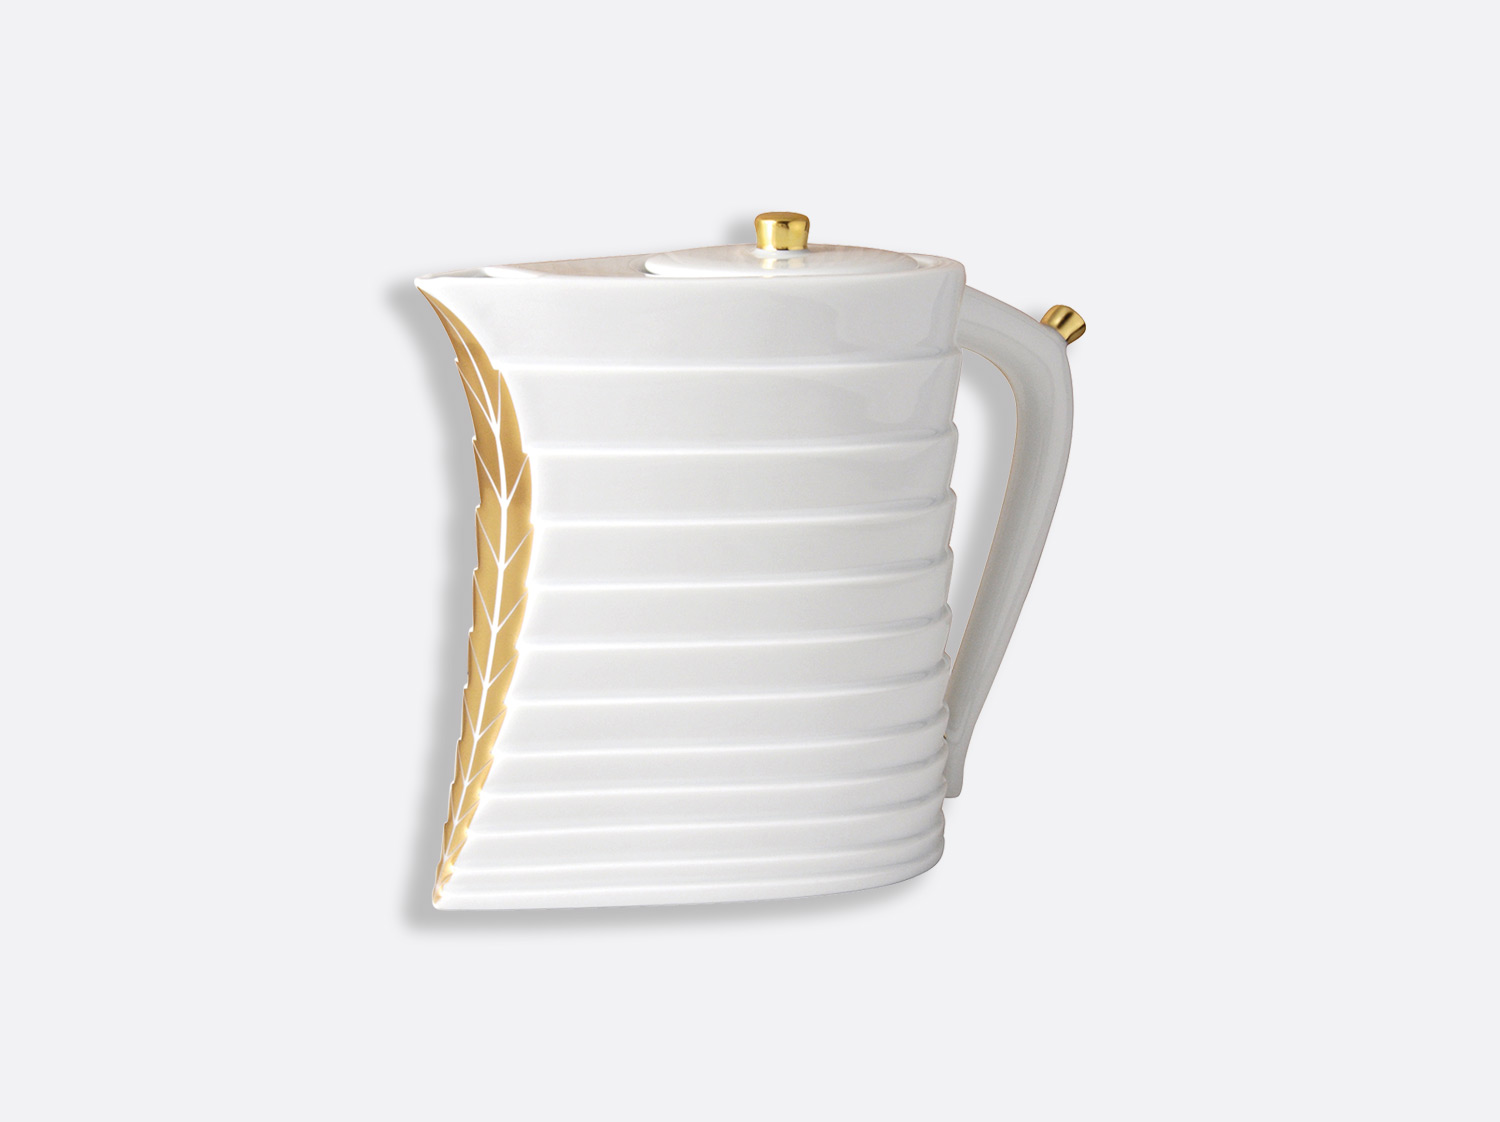 Théière 8 tasses 90 cl en porcelaine de la collection Foglia or Bernardaud